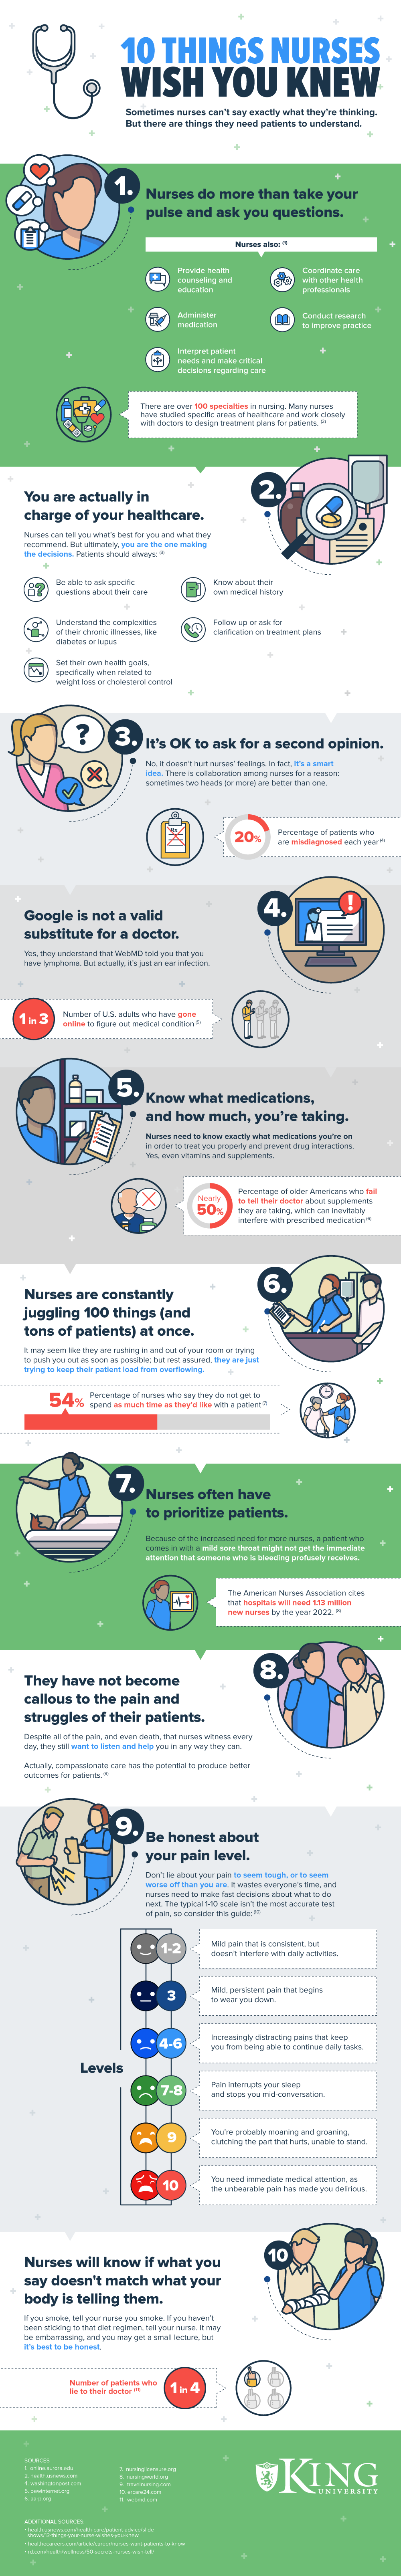 10 Things Nurses Wish You Knew Infographic